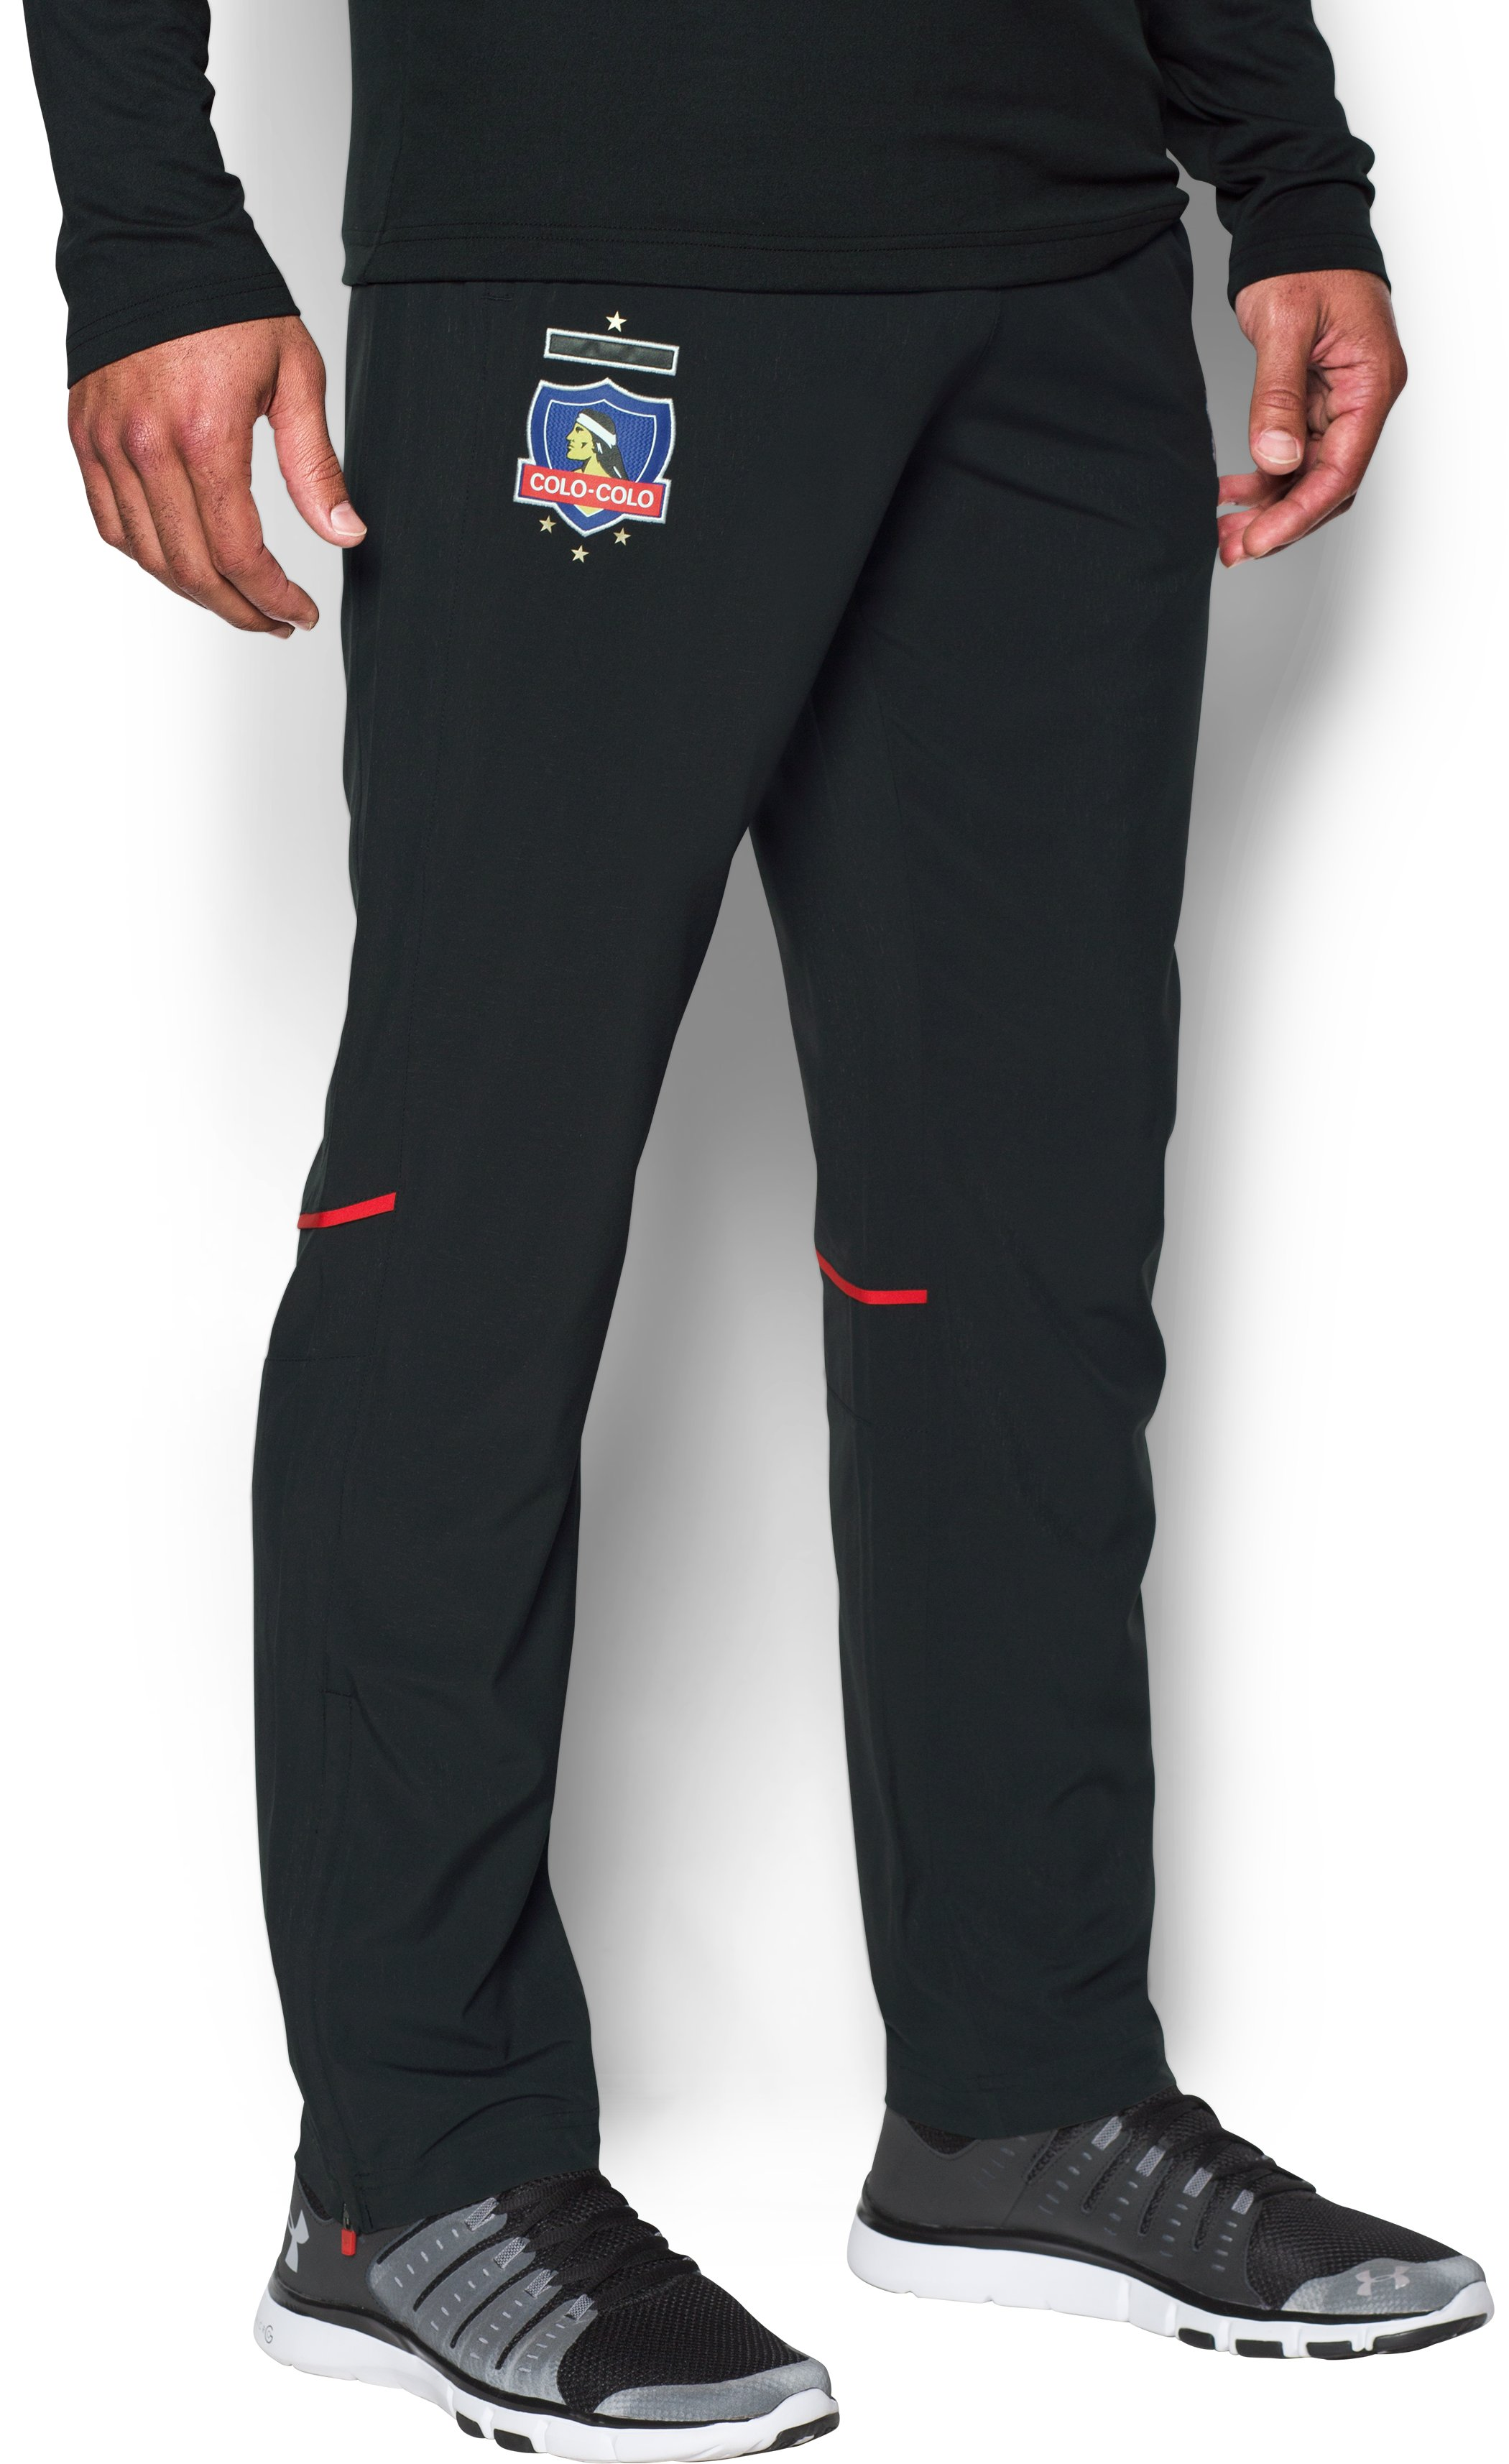 Men's Colo-Colo 16/17 Travel Pants, Black